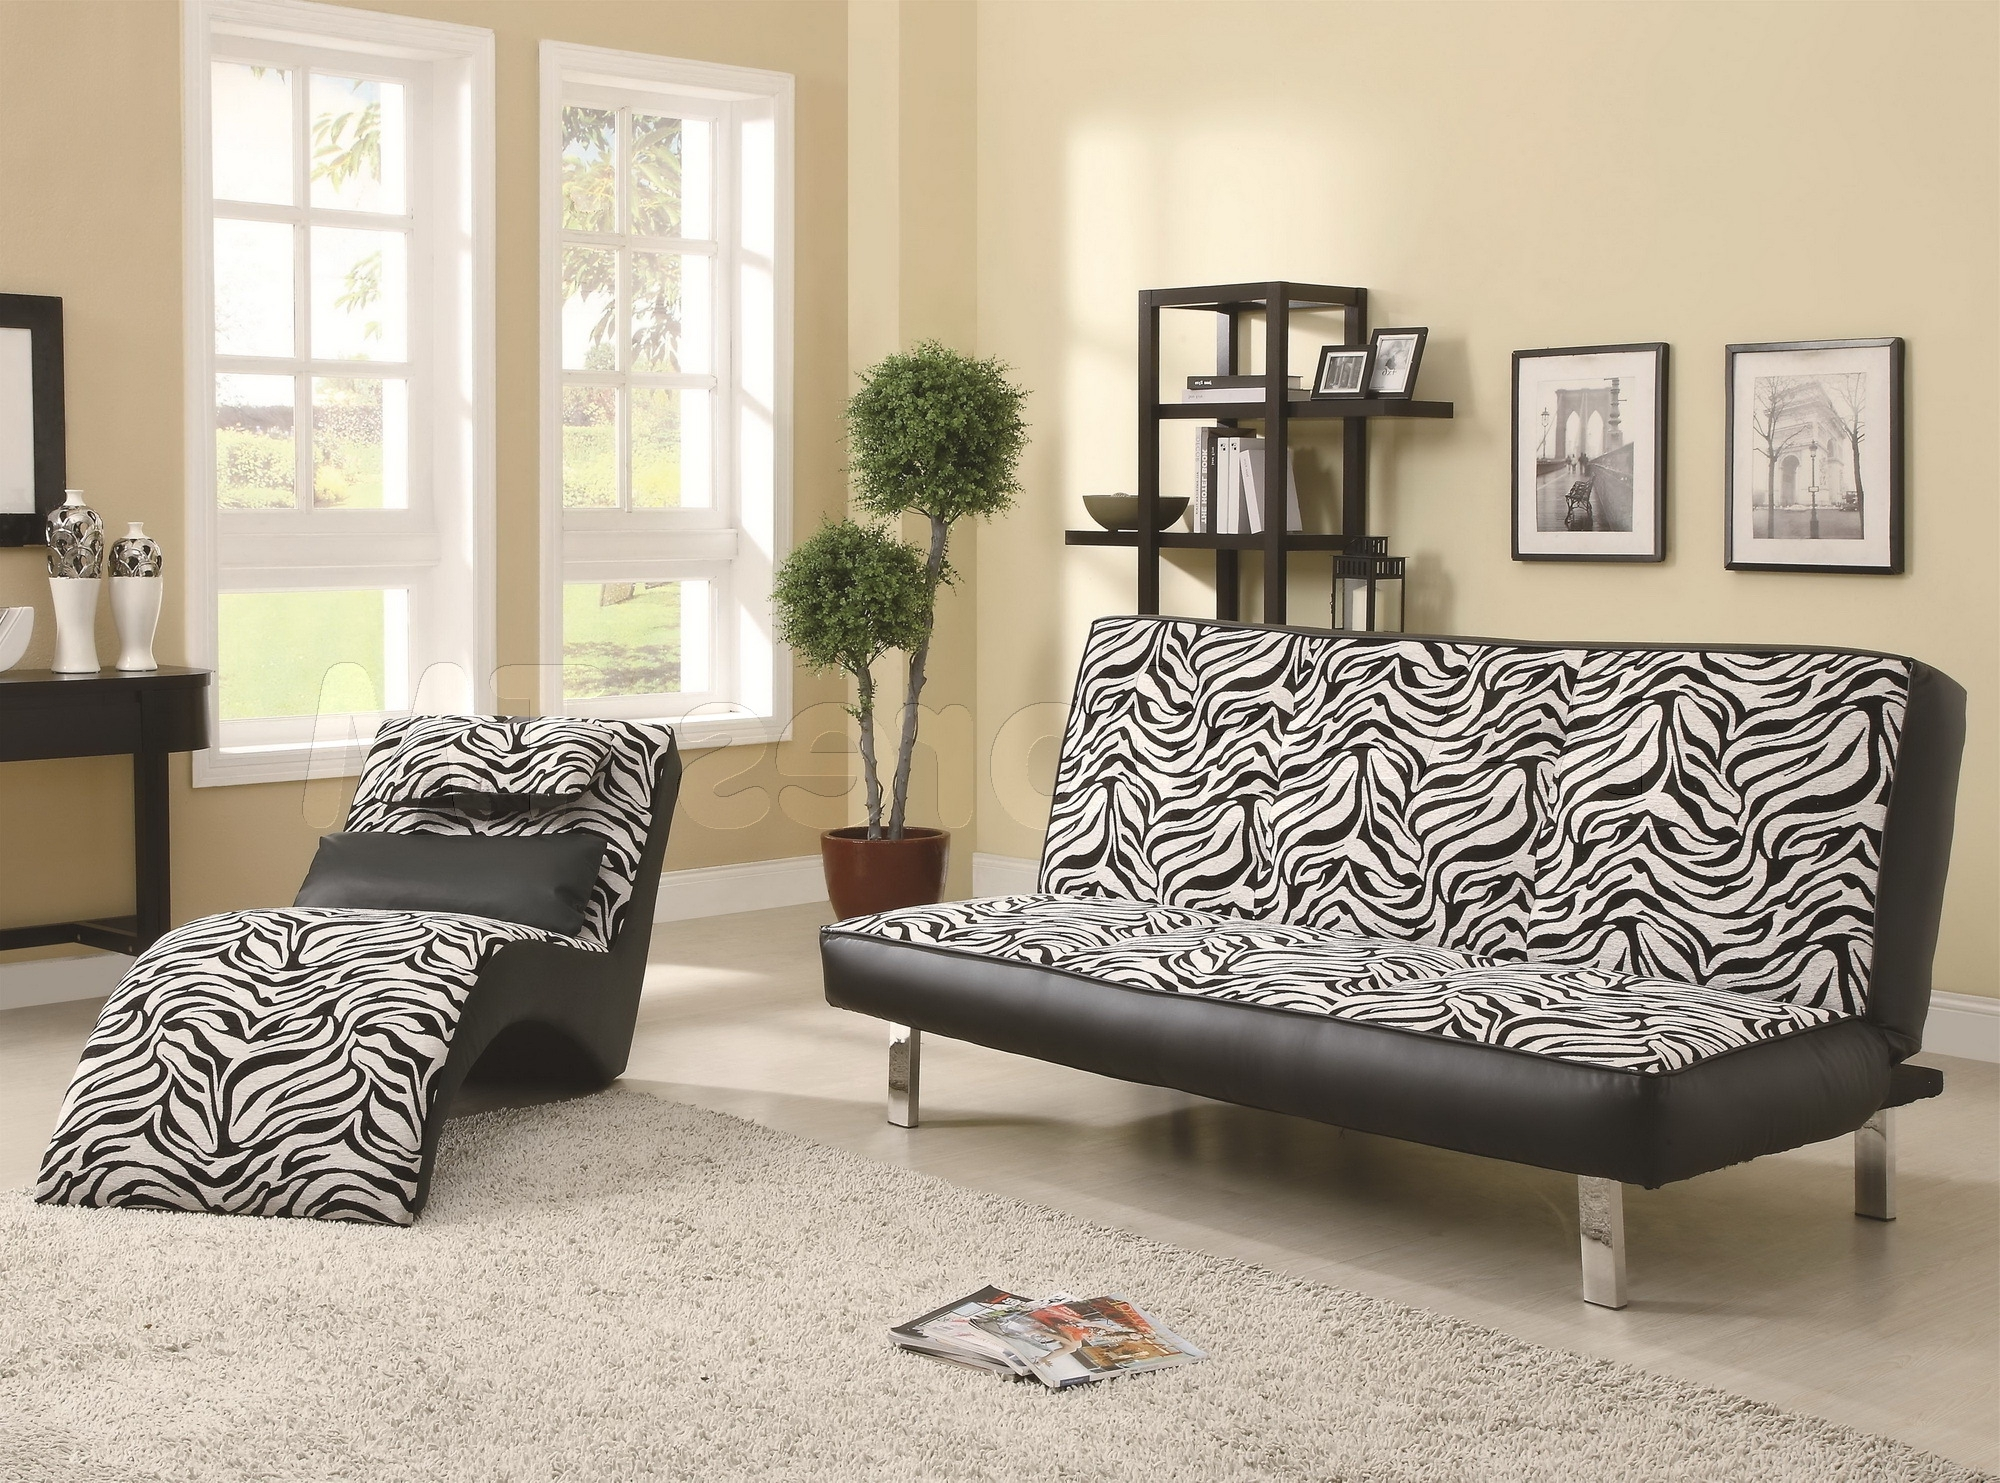 Zebra Print Chaise Lounge Chairs Inside 2018 Black White Zebra Leather Chaise Lounge Chair On Mocha Fur Rug (View 11 of 15)